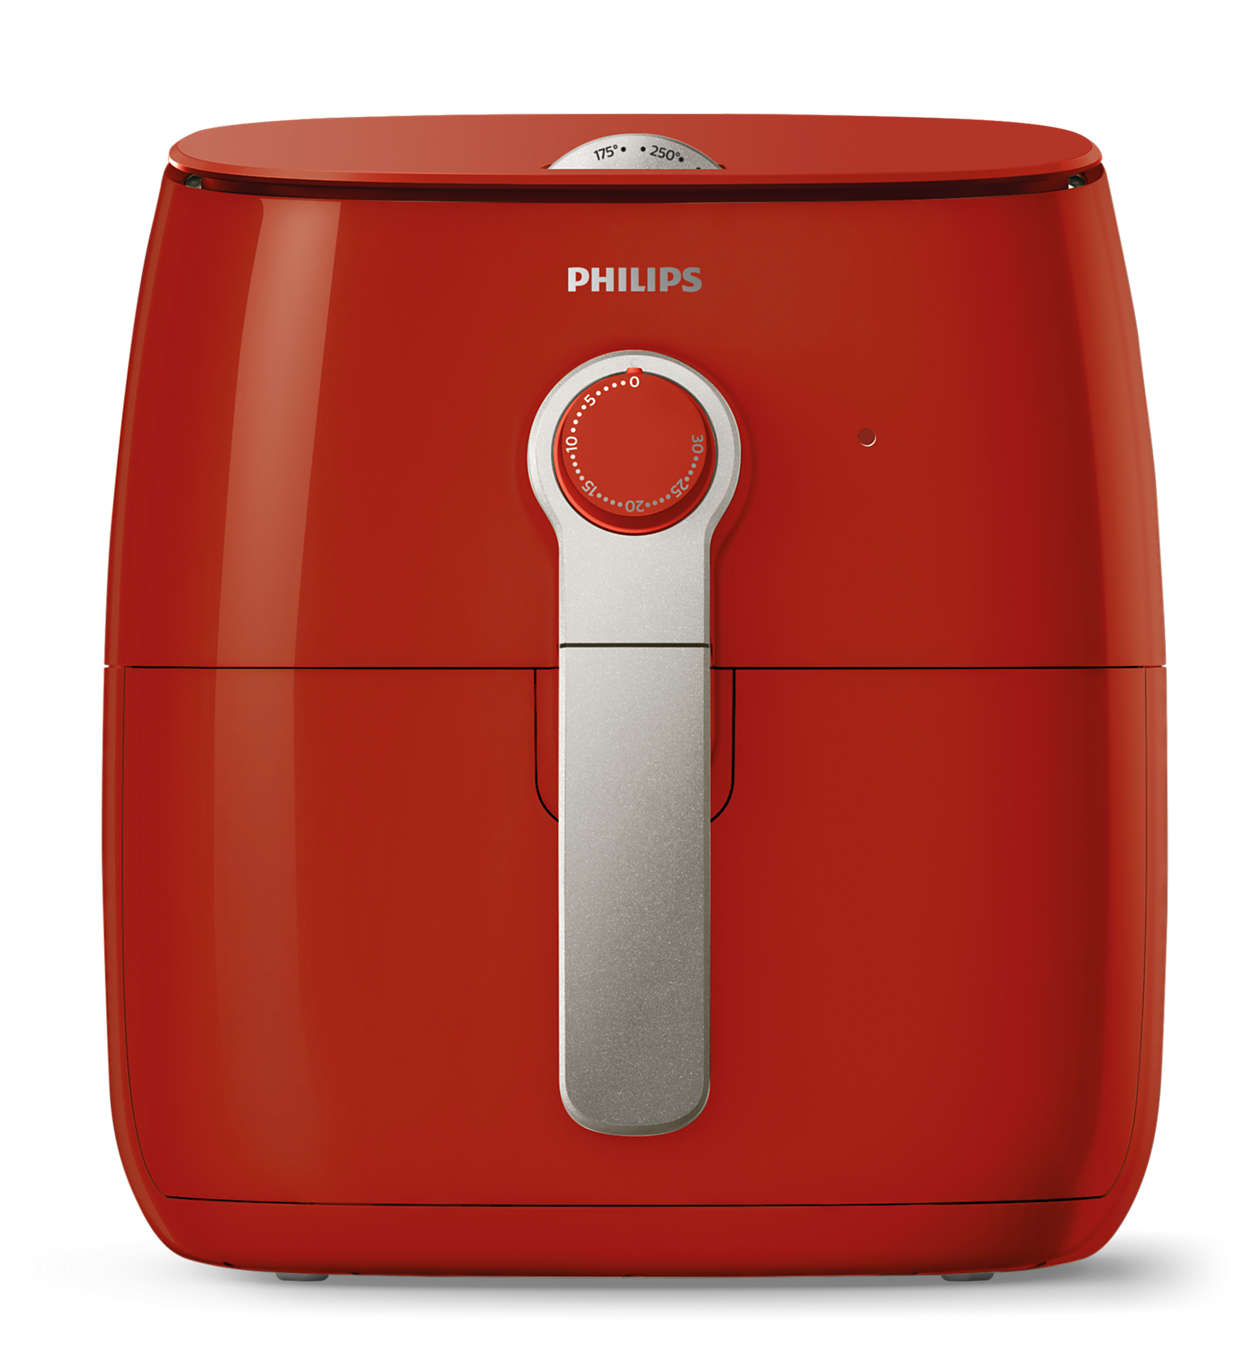 philips air fryer user manual